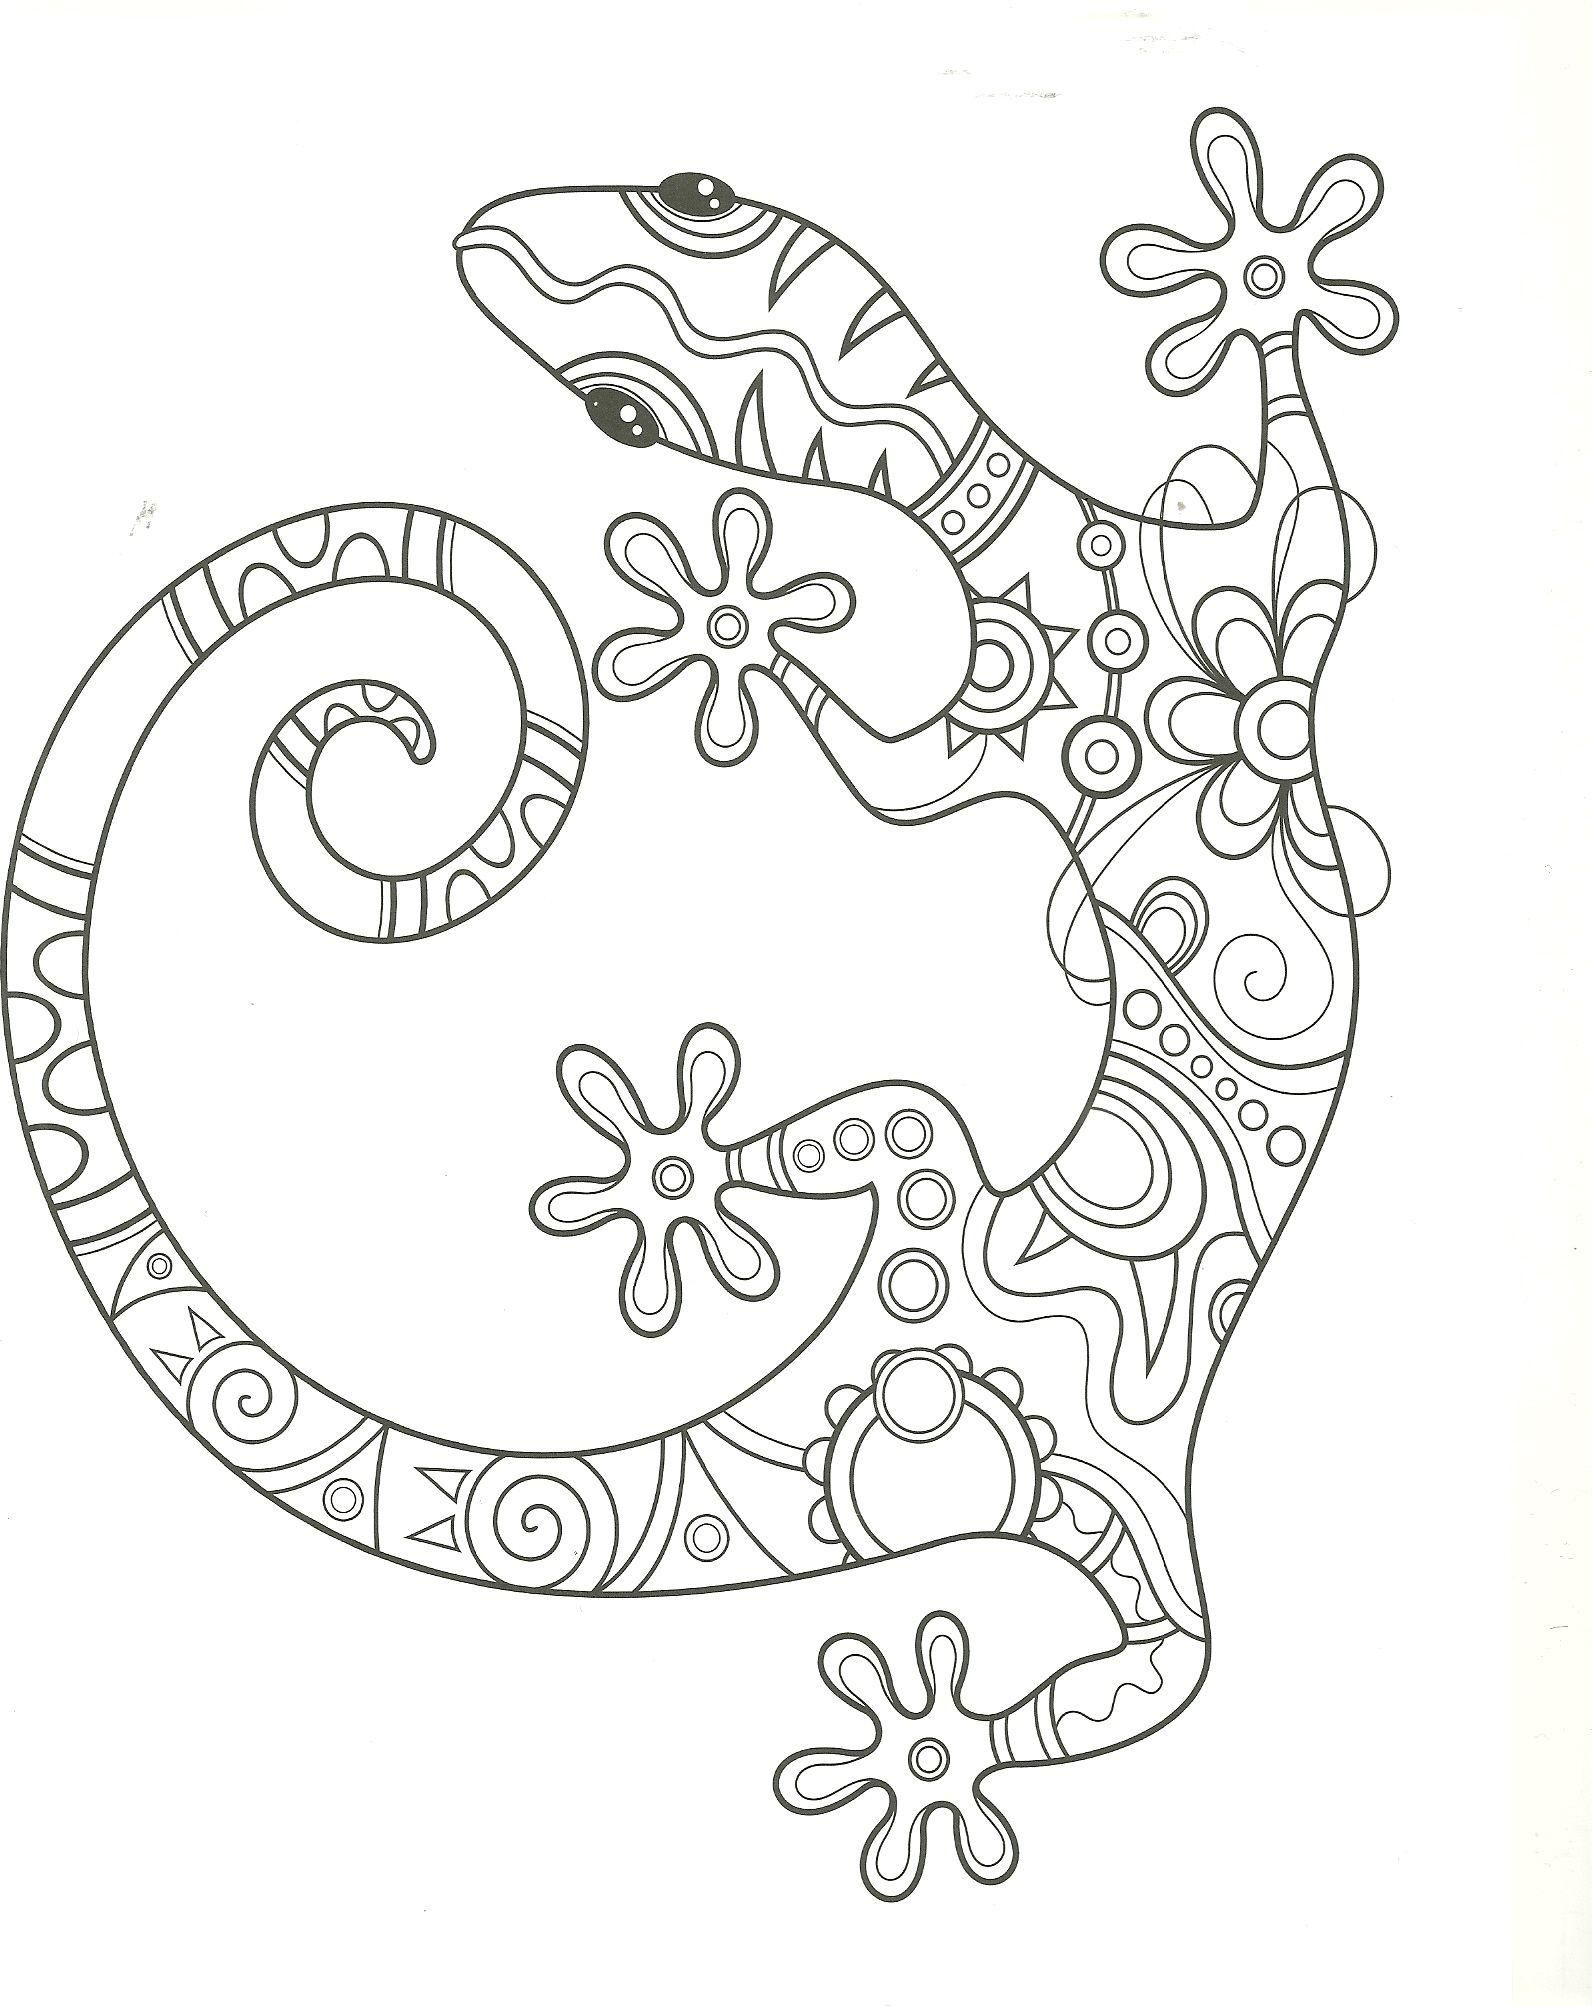 16 Free Printable Colouring Pages Lizards Mandala Coloring Pages Mandala Coloring Snake Coloring Pages